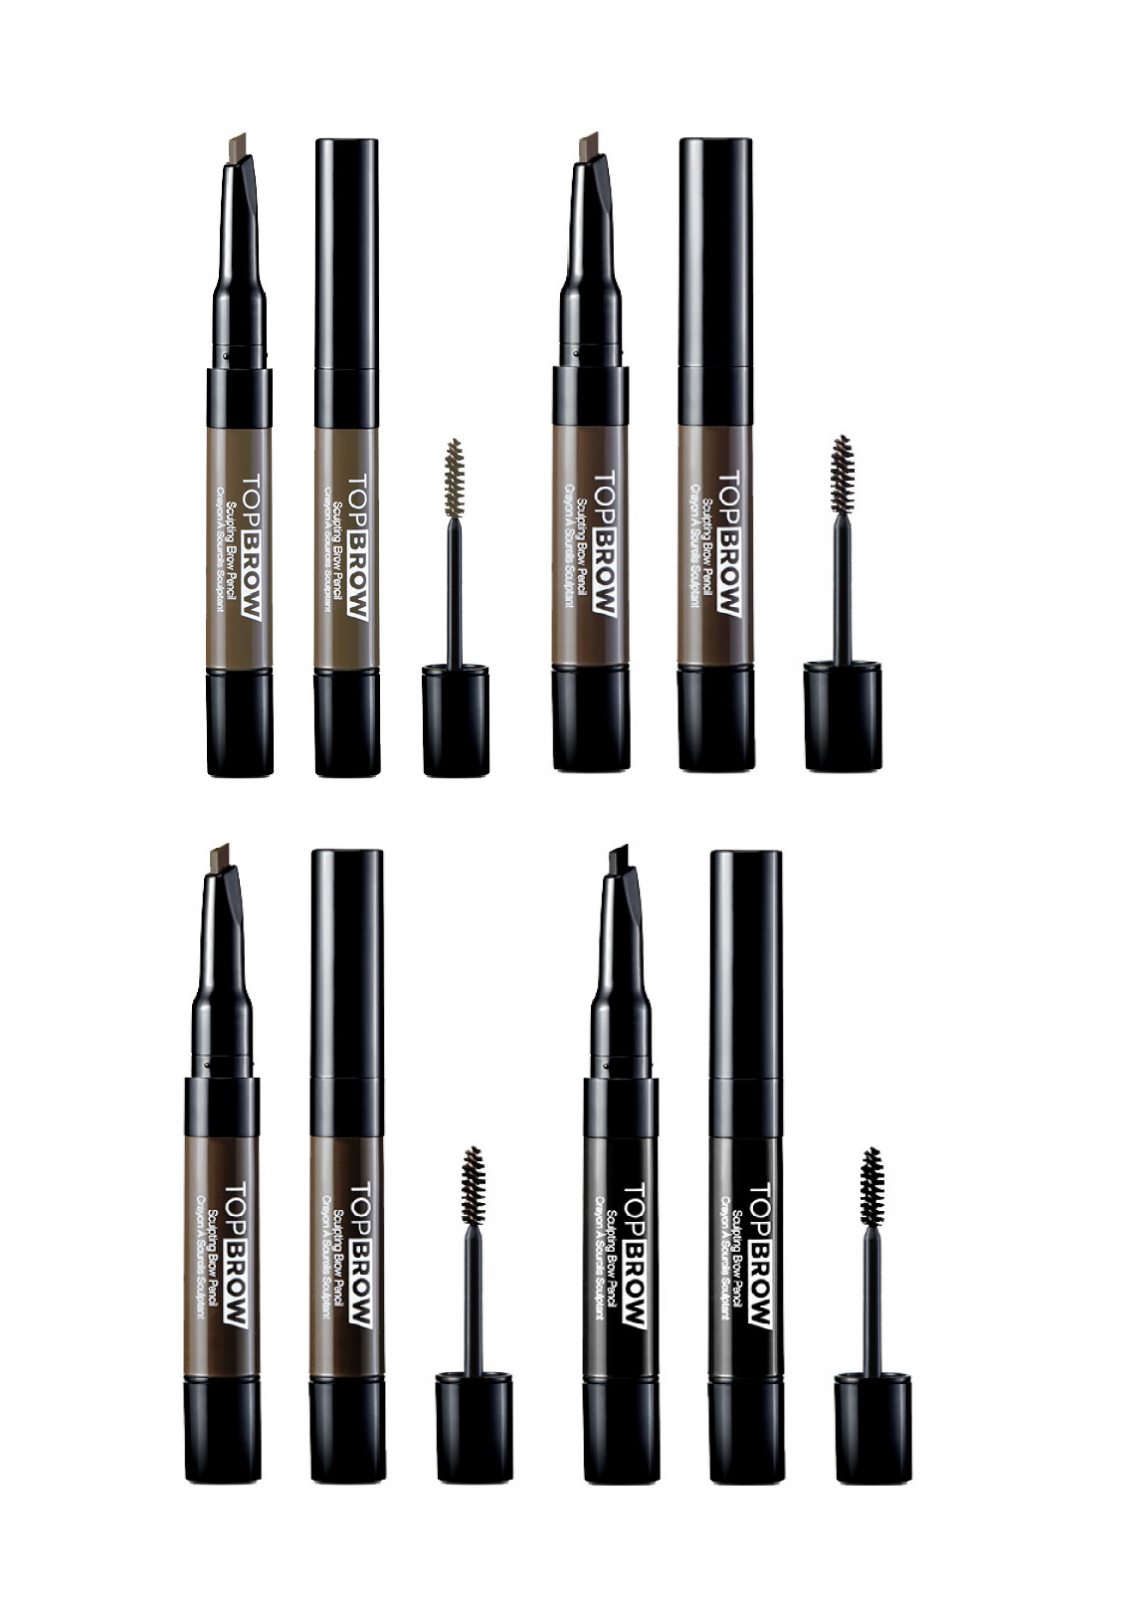 KISS NY Professional Eyebrow Sculpting Brow Pencil Mascara